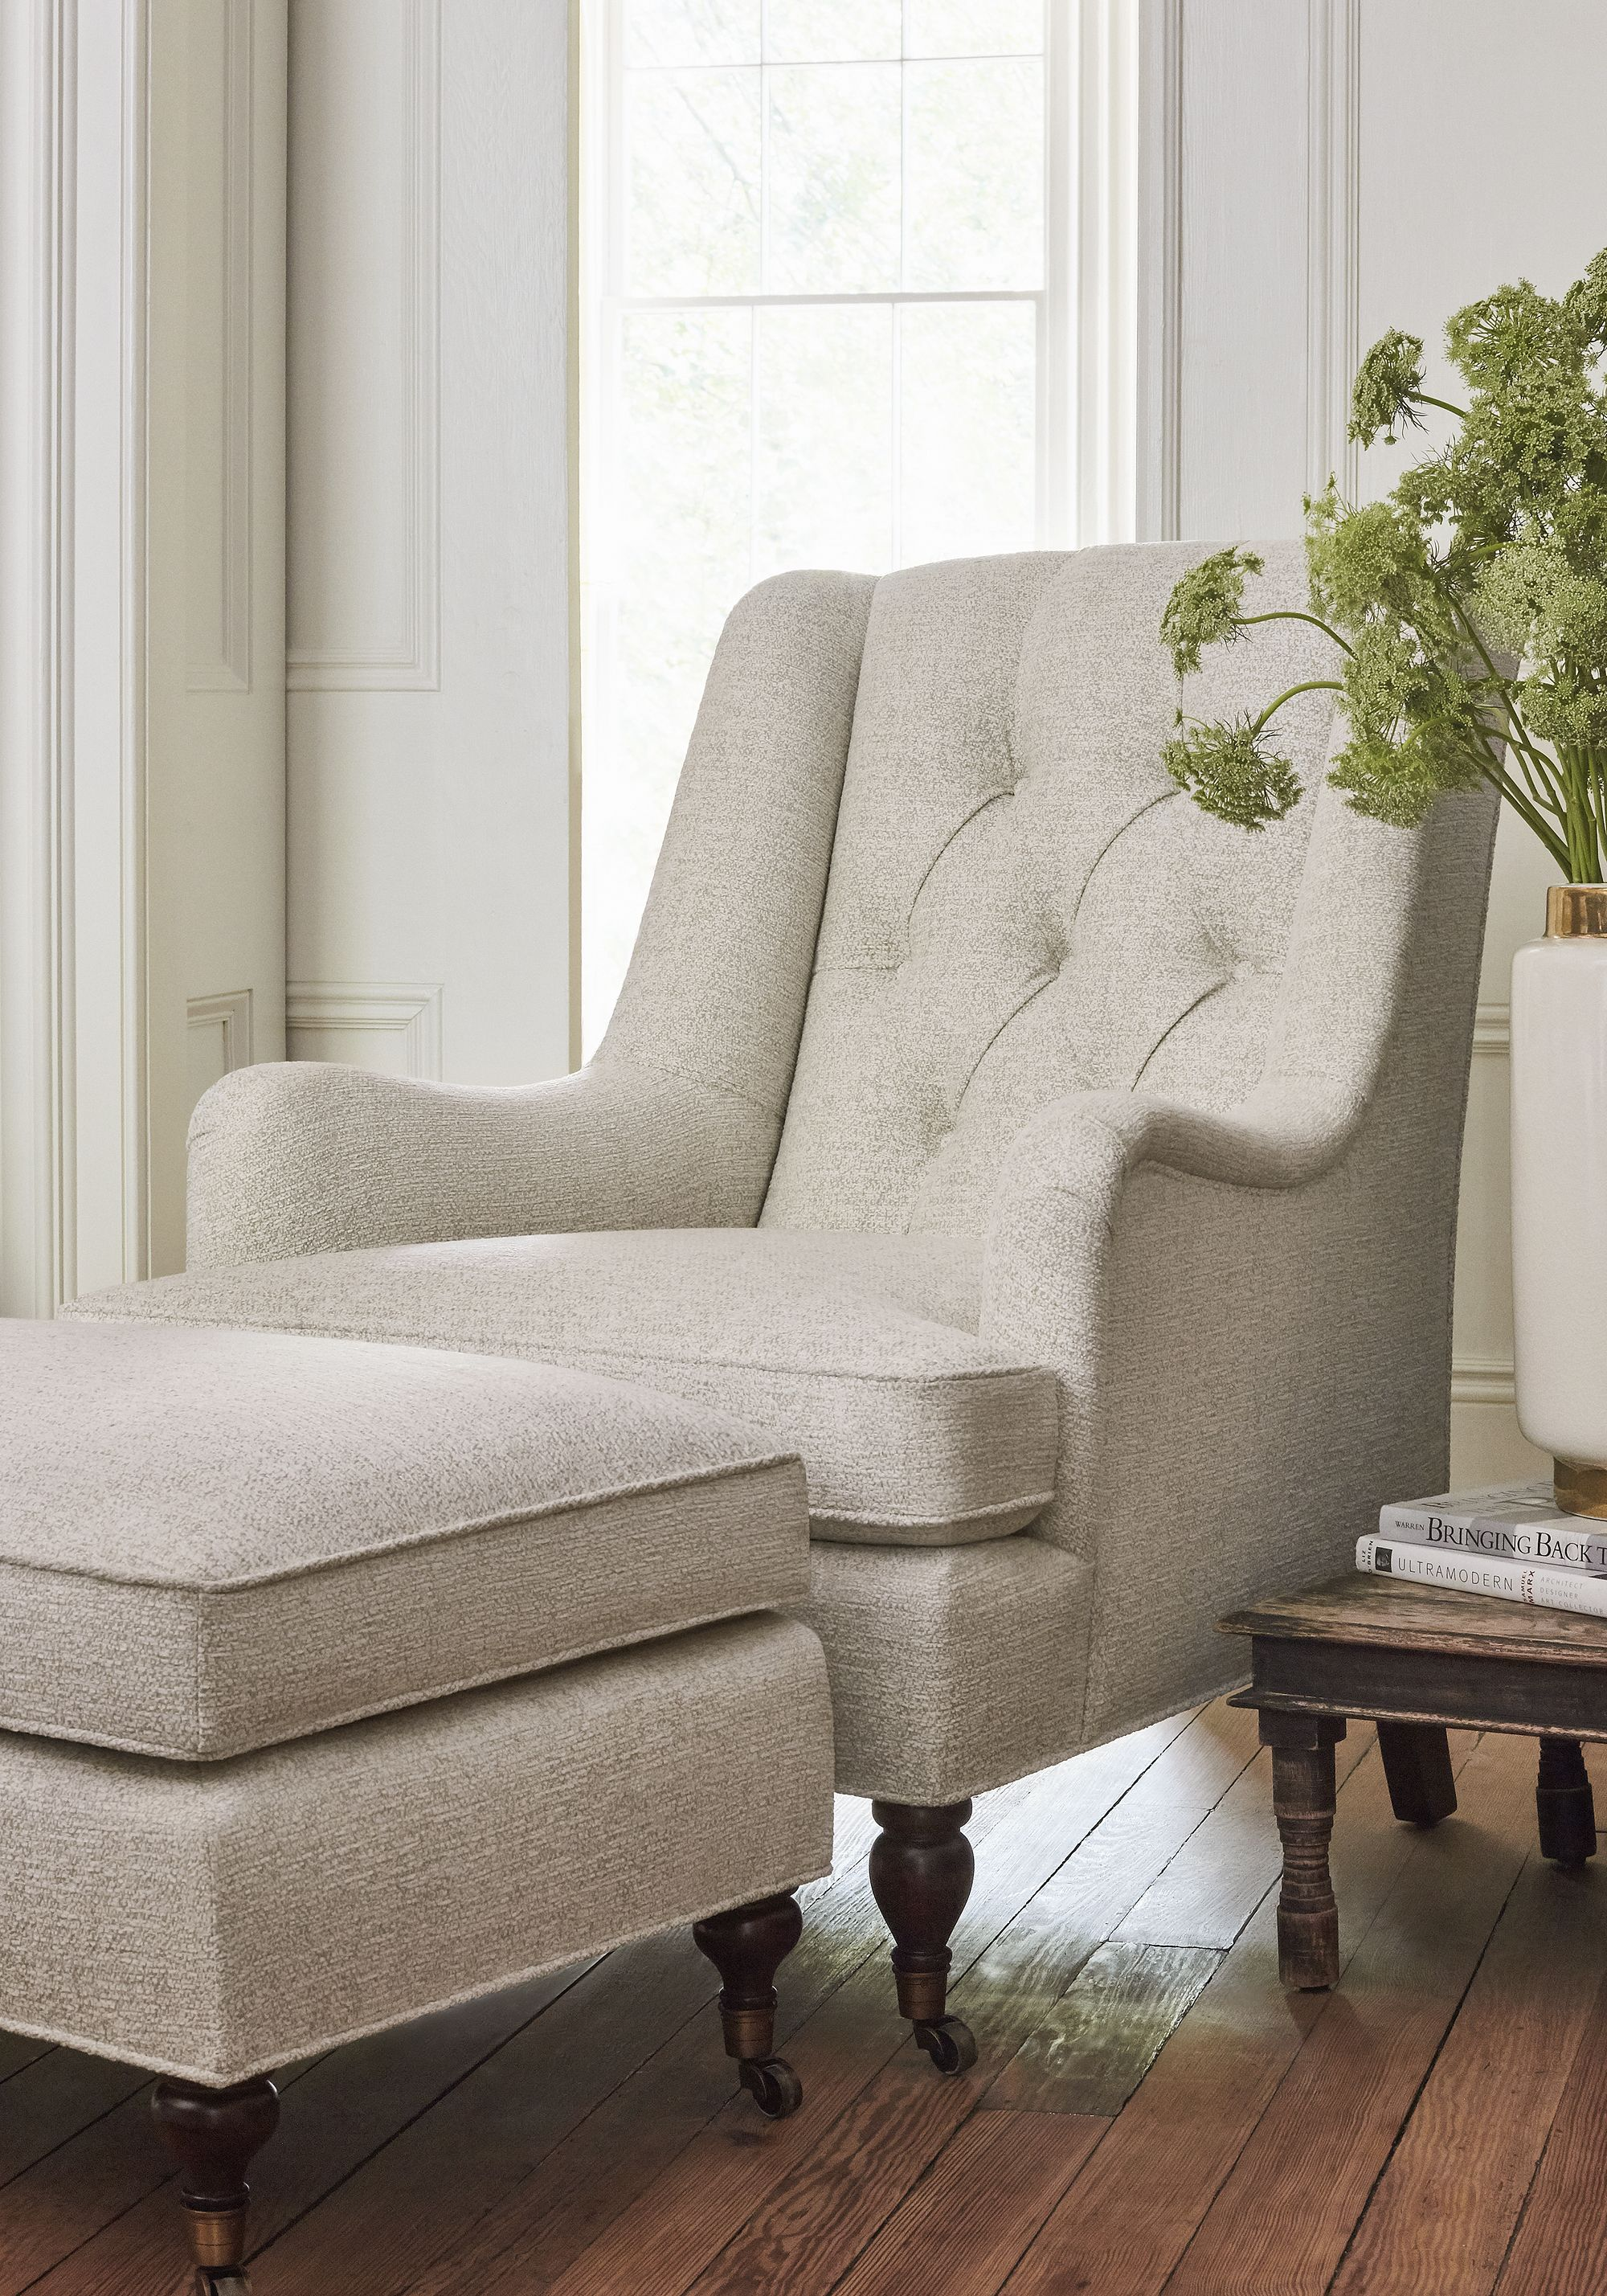 Newport wing chair and brookline ottoman in shiloh woven fabric in heather linen